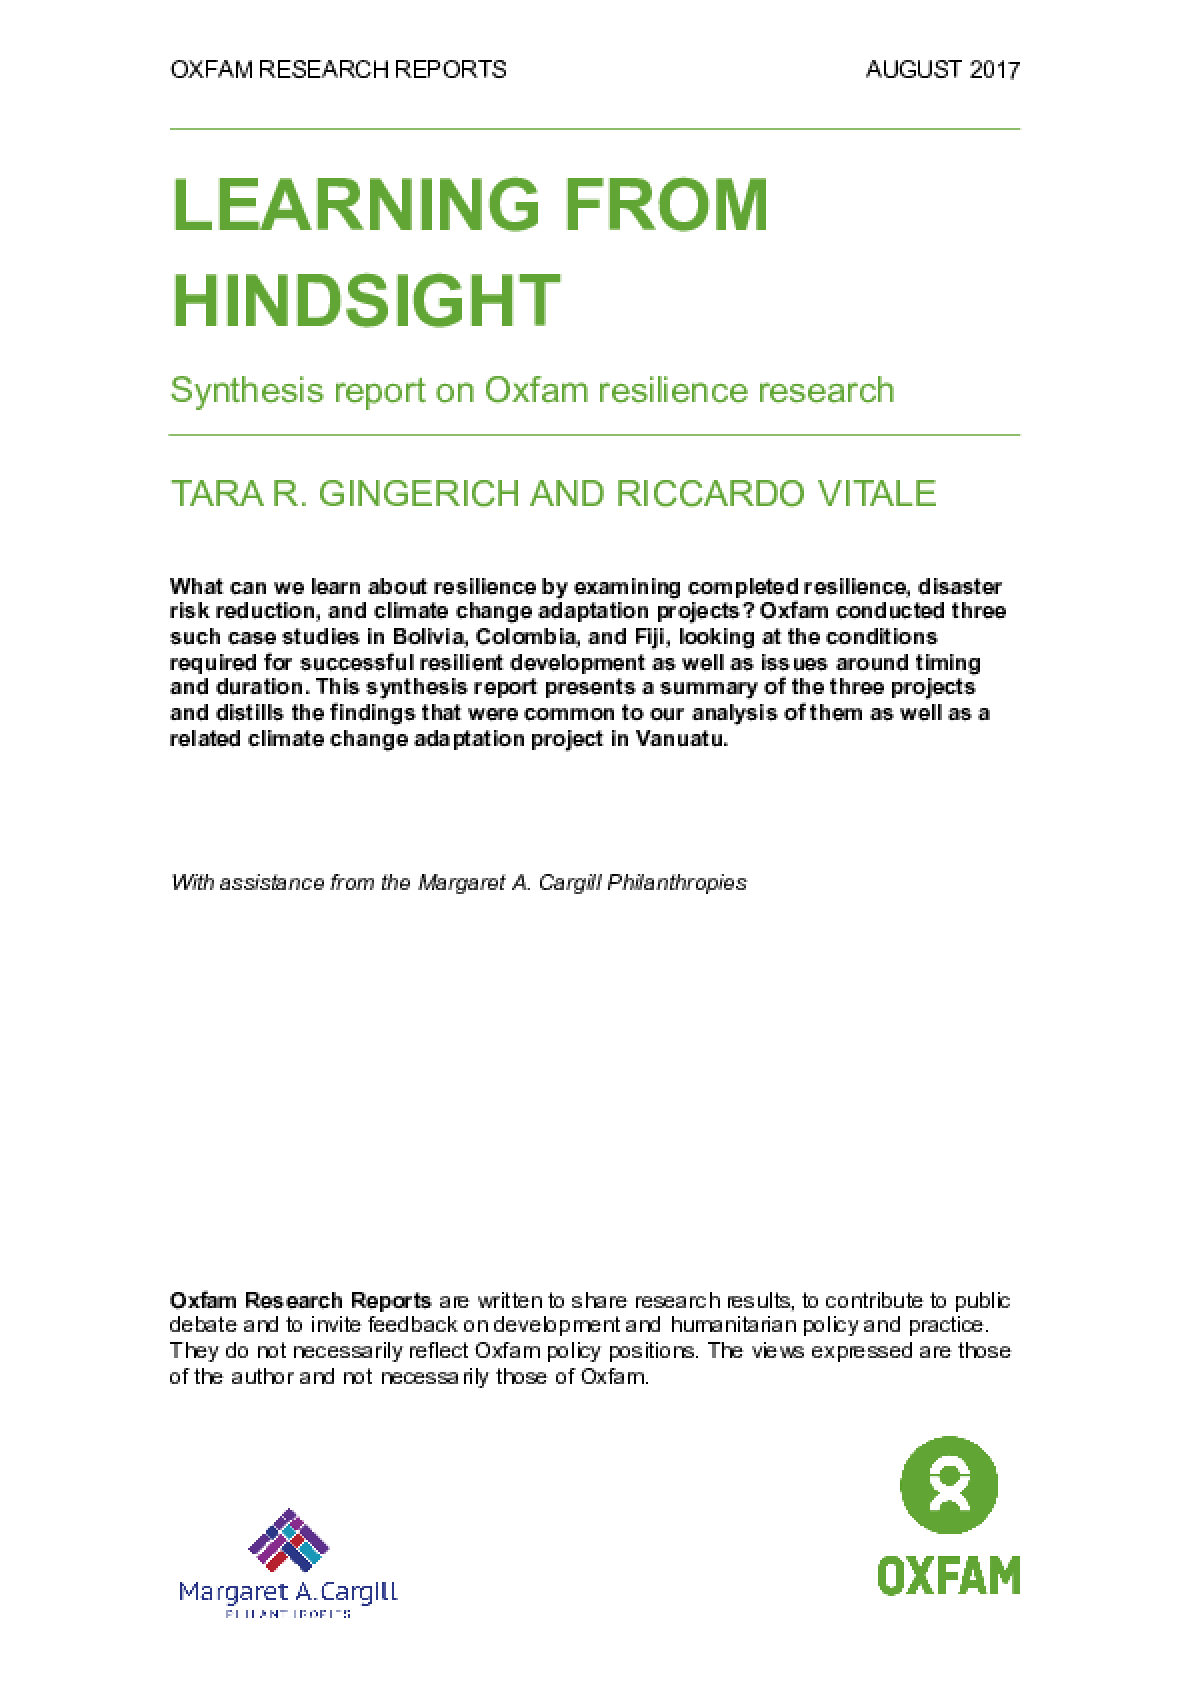 Learning from Hindsight: Synthesis report on Oxfam resilience research